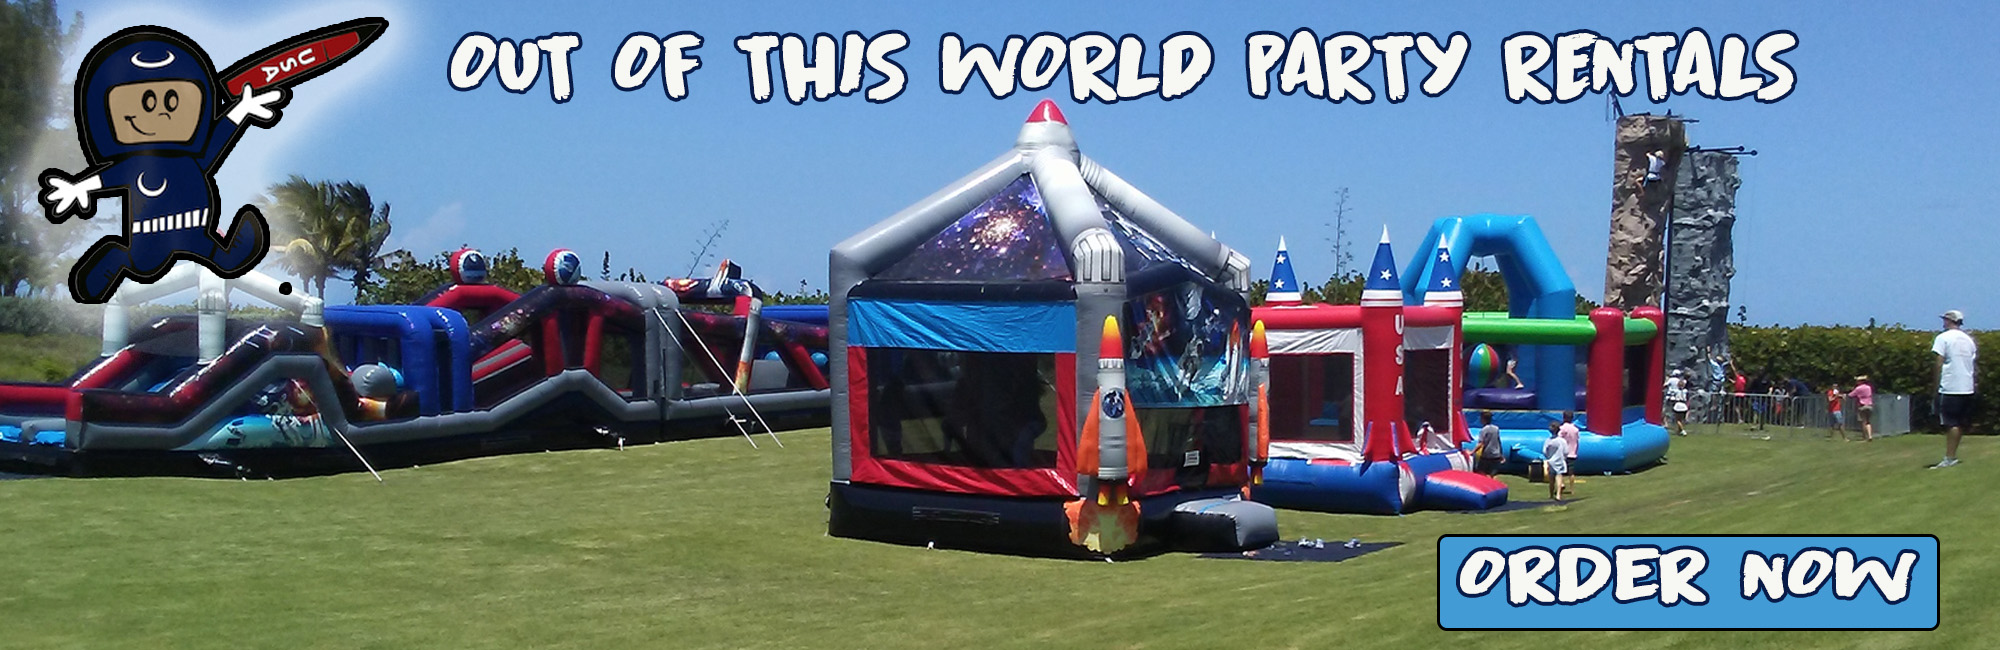 Call The Moon Man Bounce House And Water Slide Rentals Vero Beach